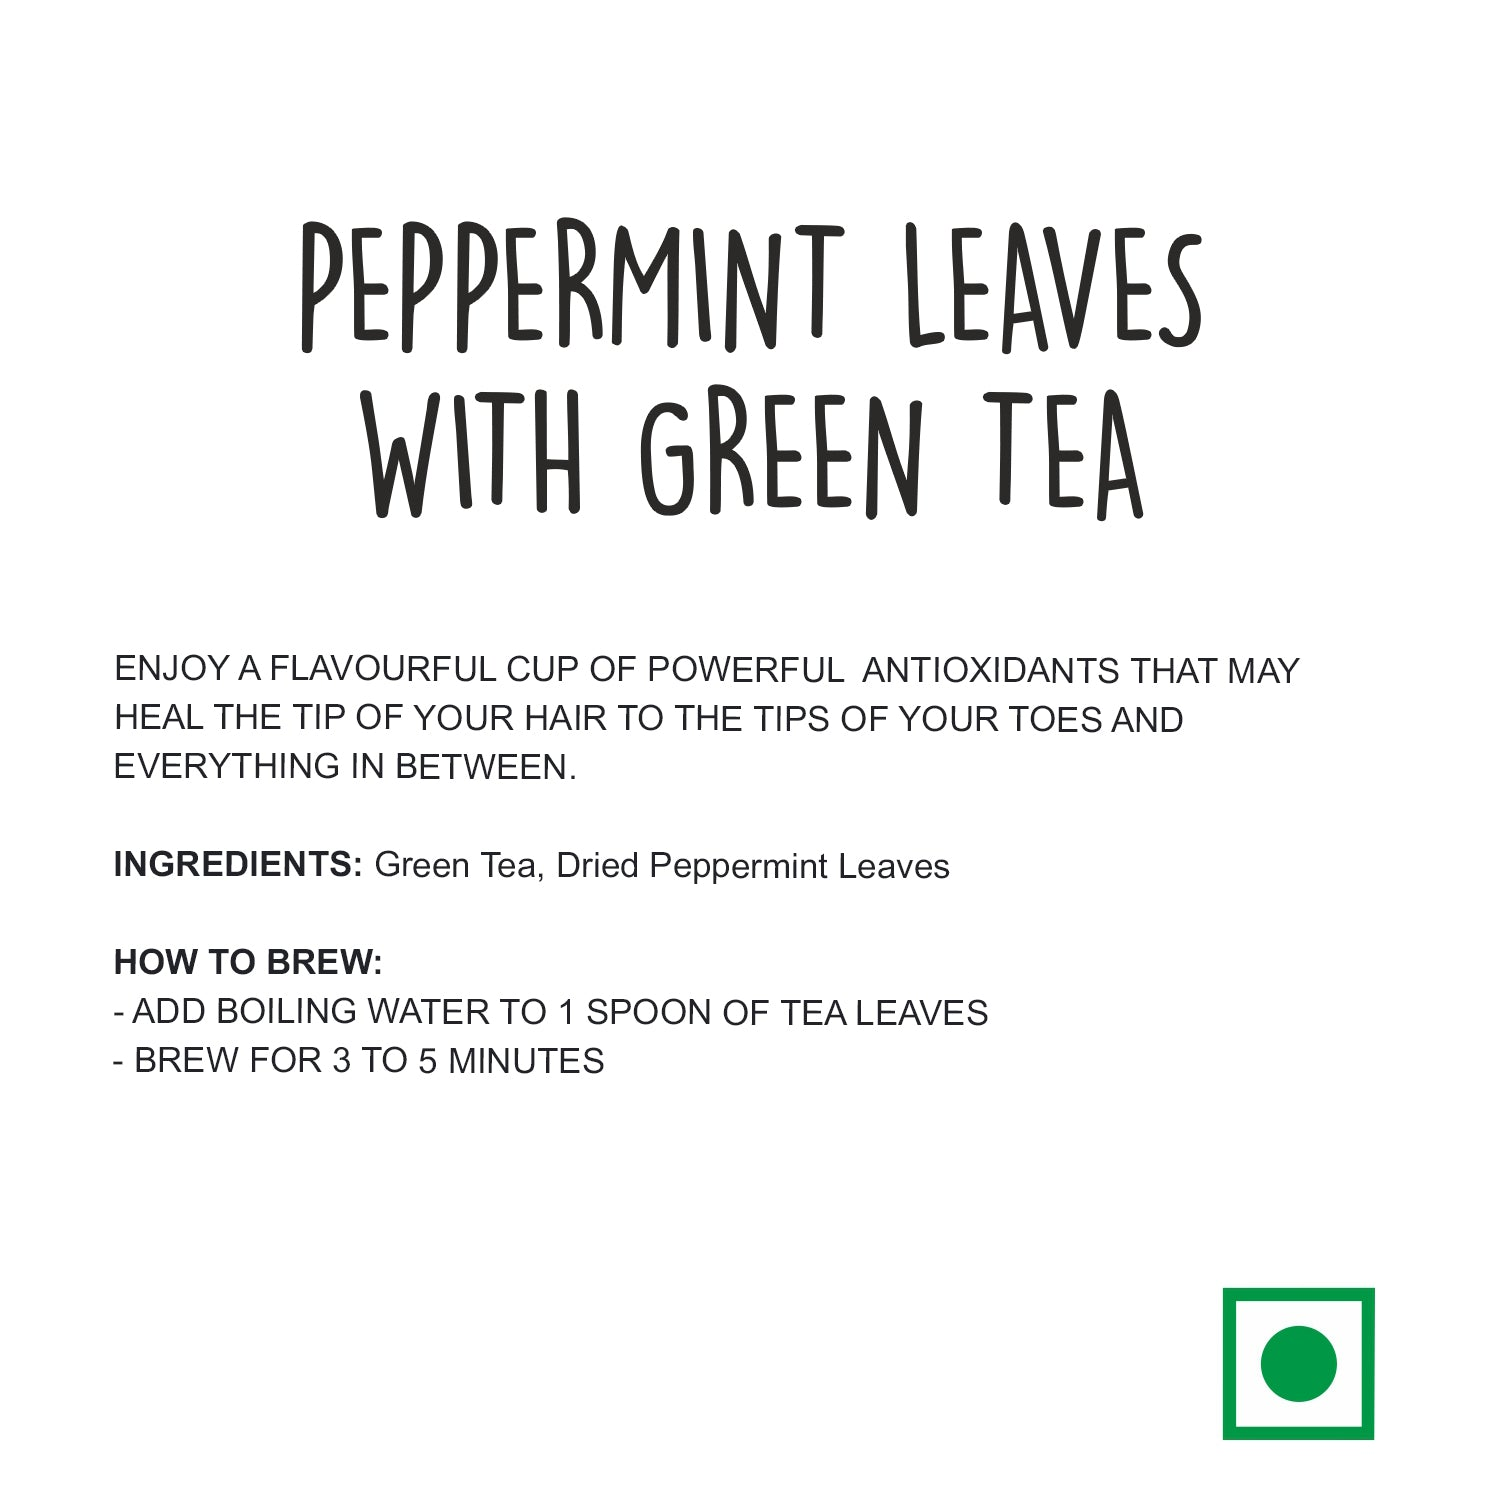 Peppermint Leaves with Green Tea